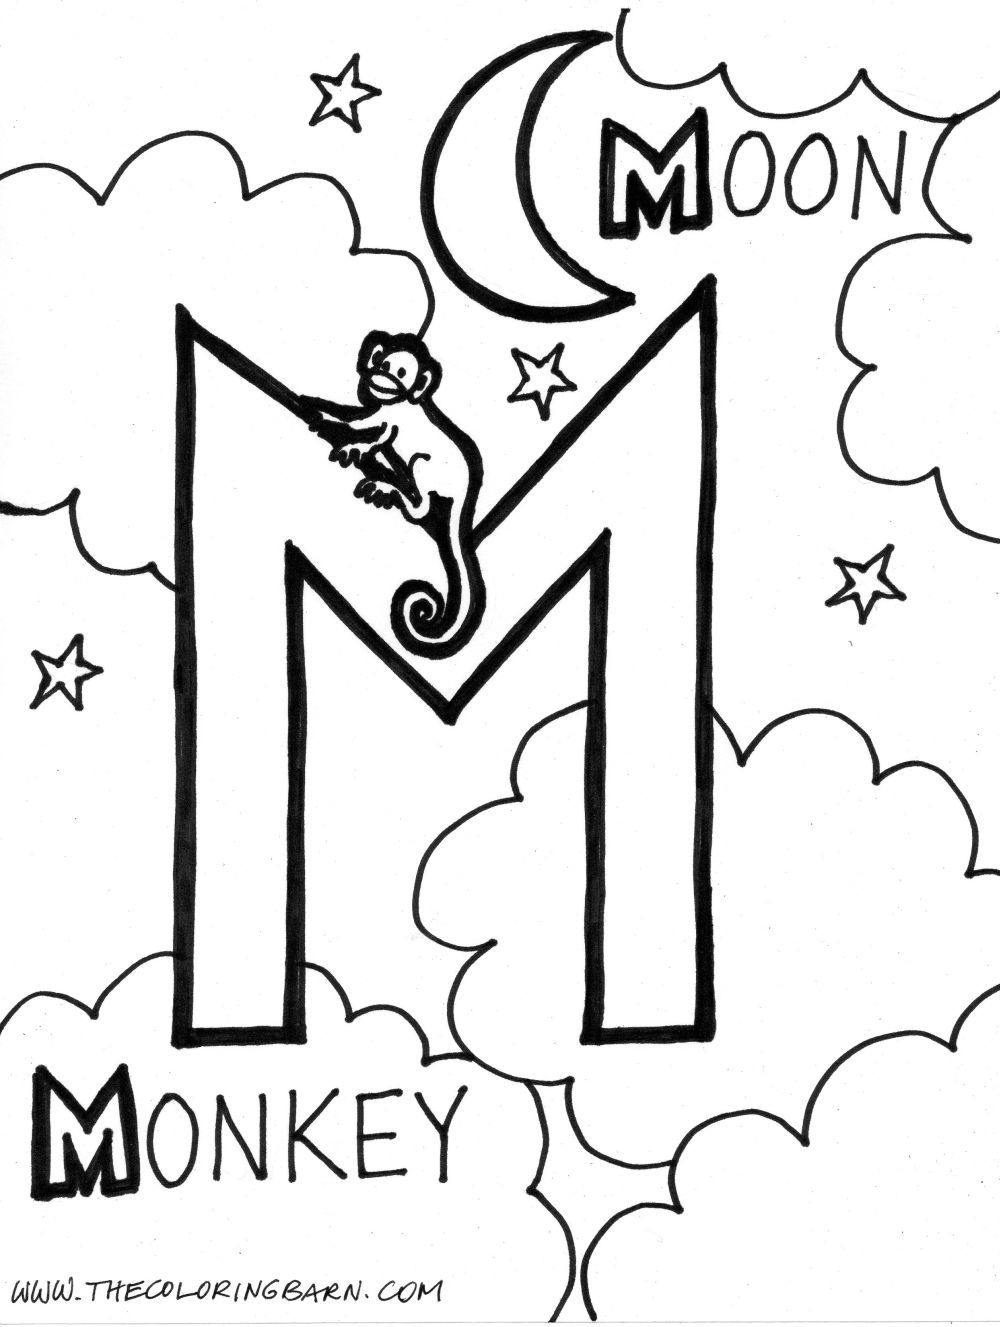 Coloring book pages letter m - M For Moon M For Monkey Alphabet Coloring Pageskids